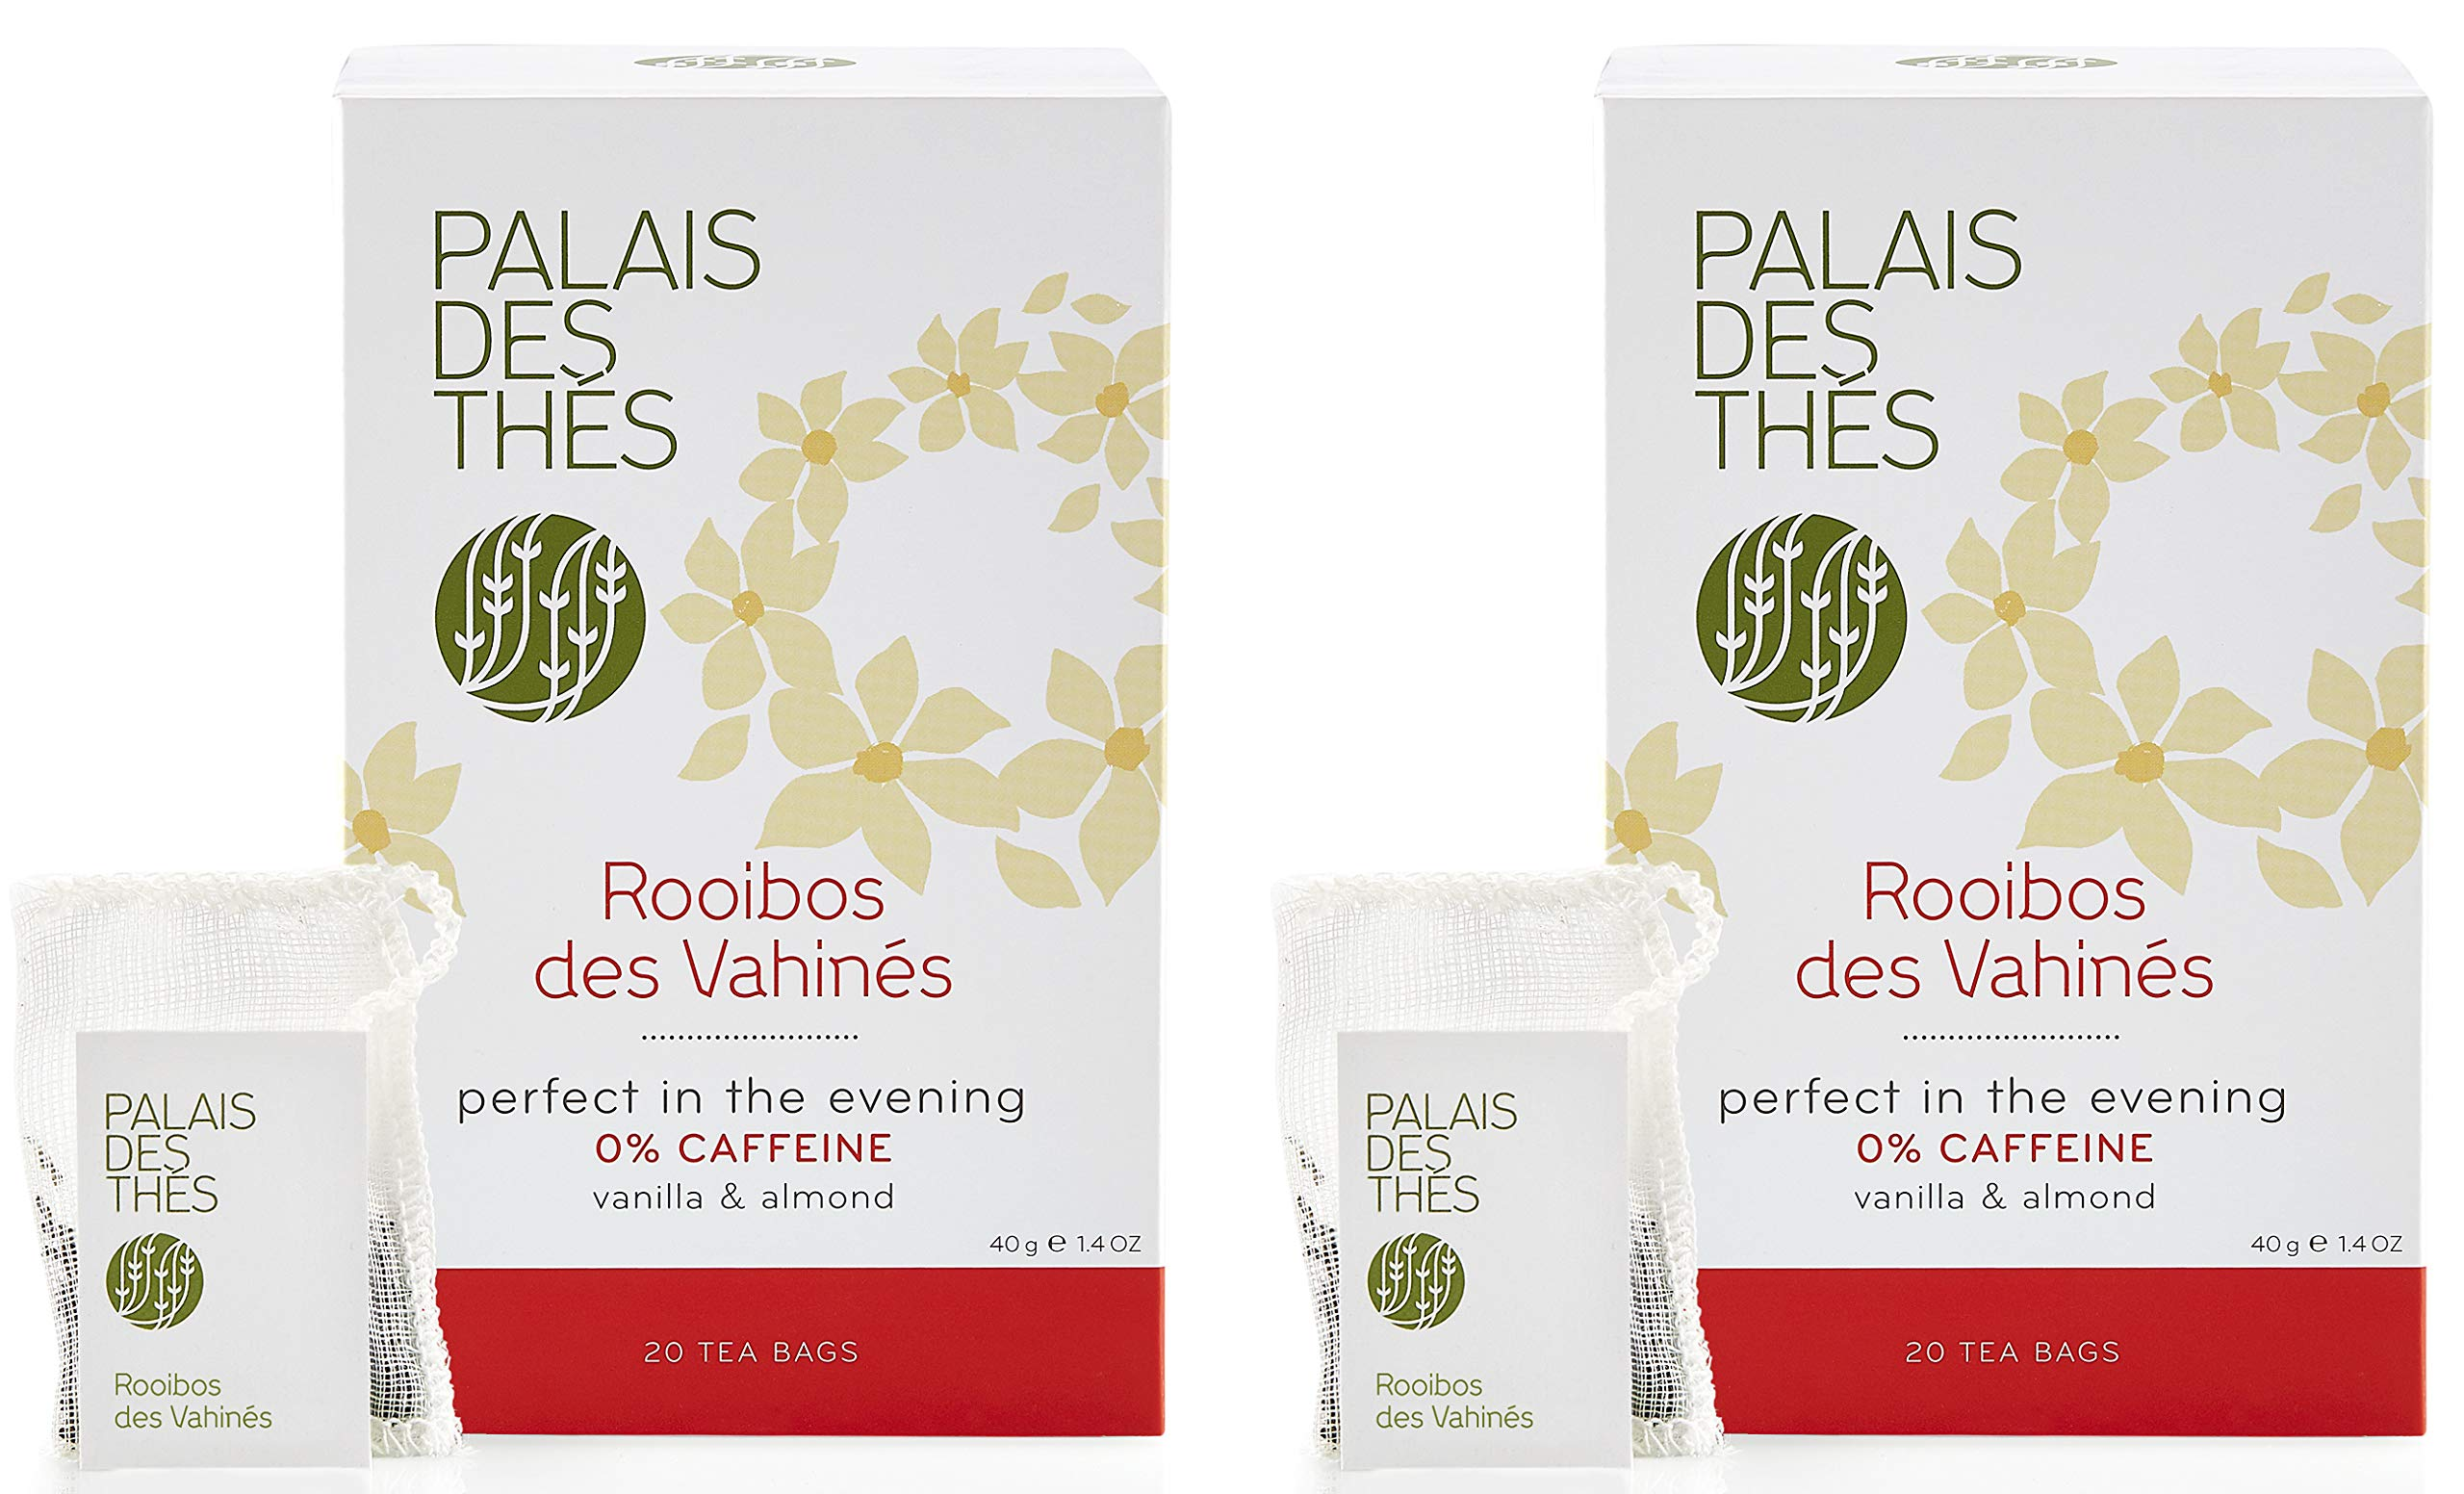 Palais des Thés Rooibos des Vahines Herbal Tea with Vanilla and Almond, 20 Tea Bags (2 Pack) by Palais des Thés